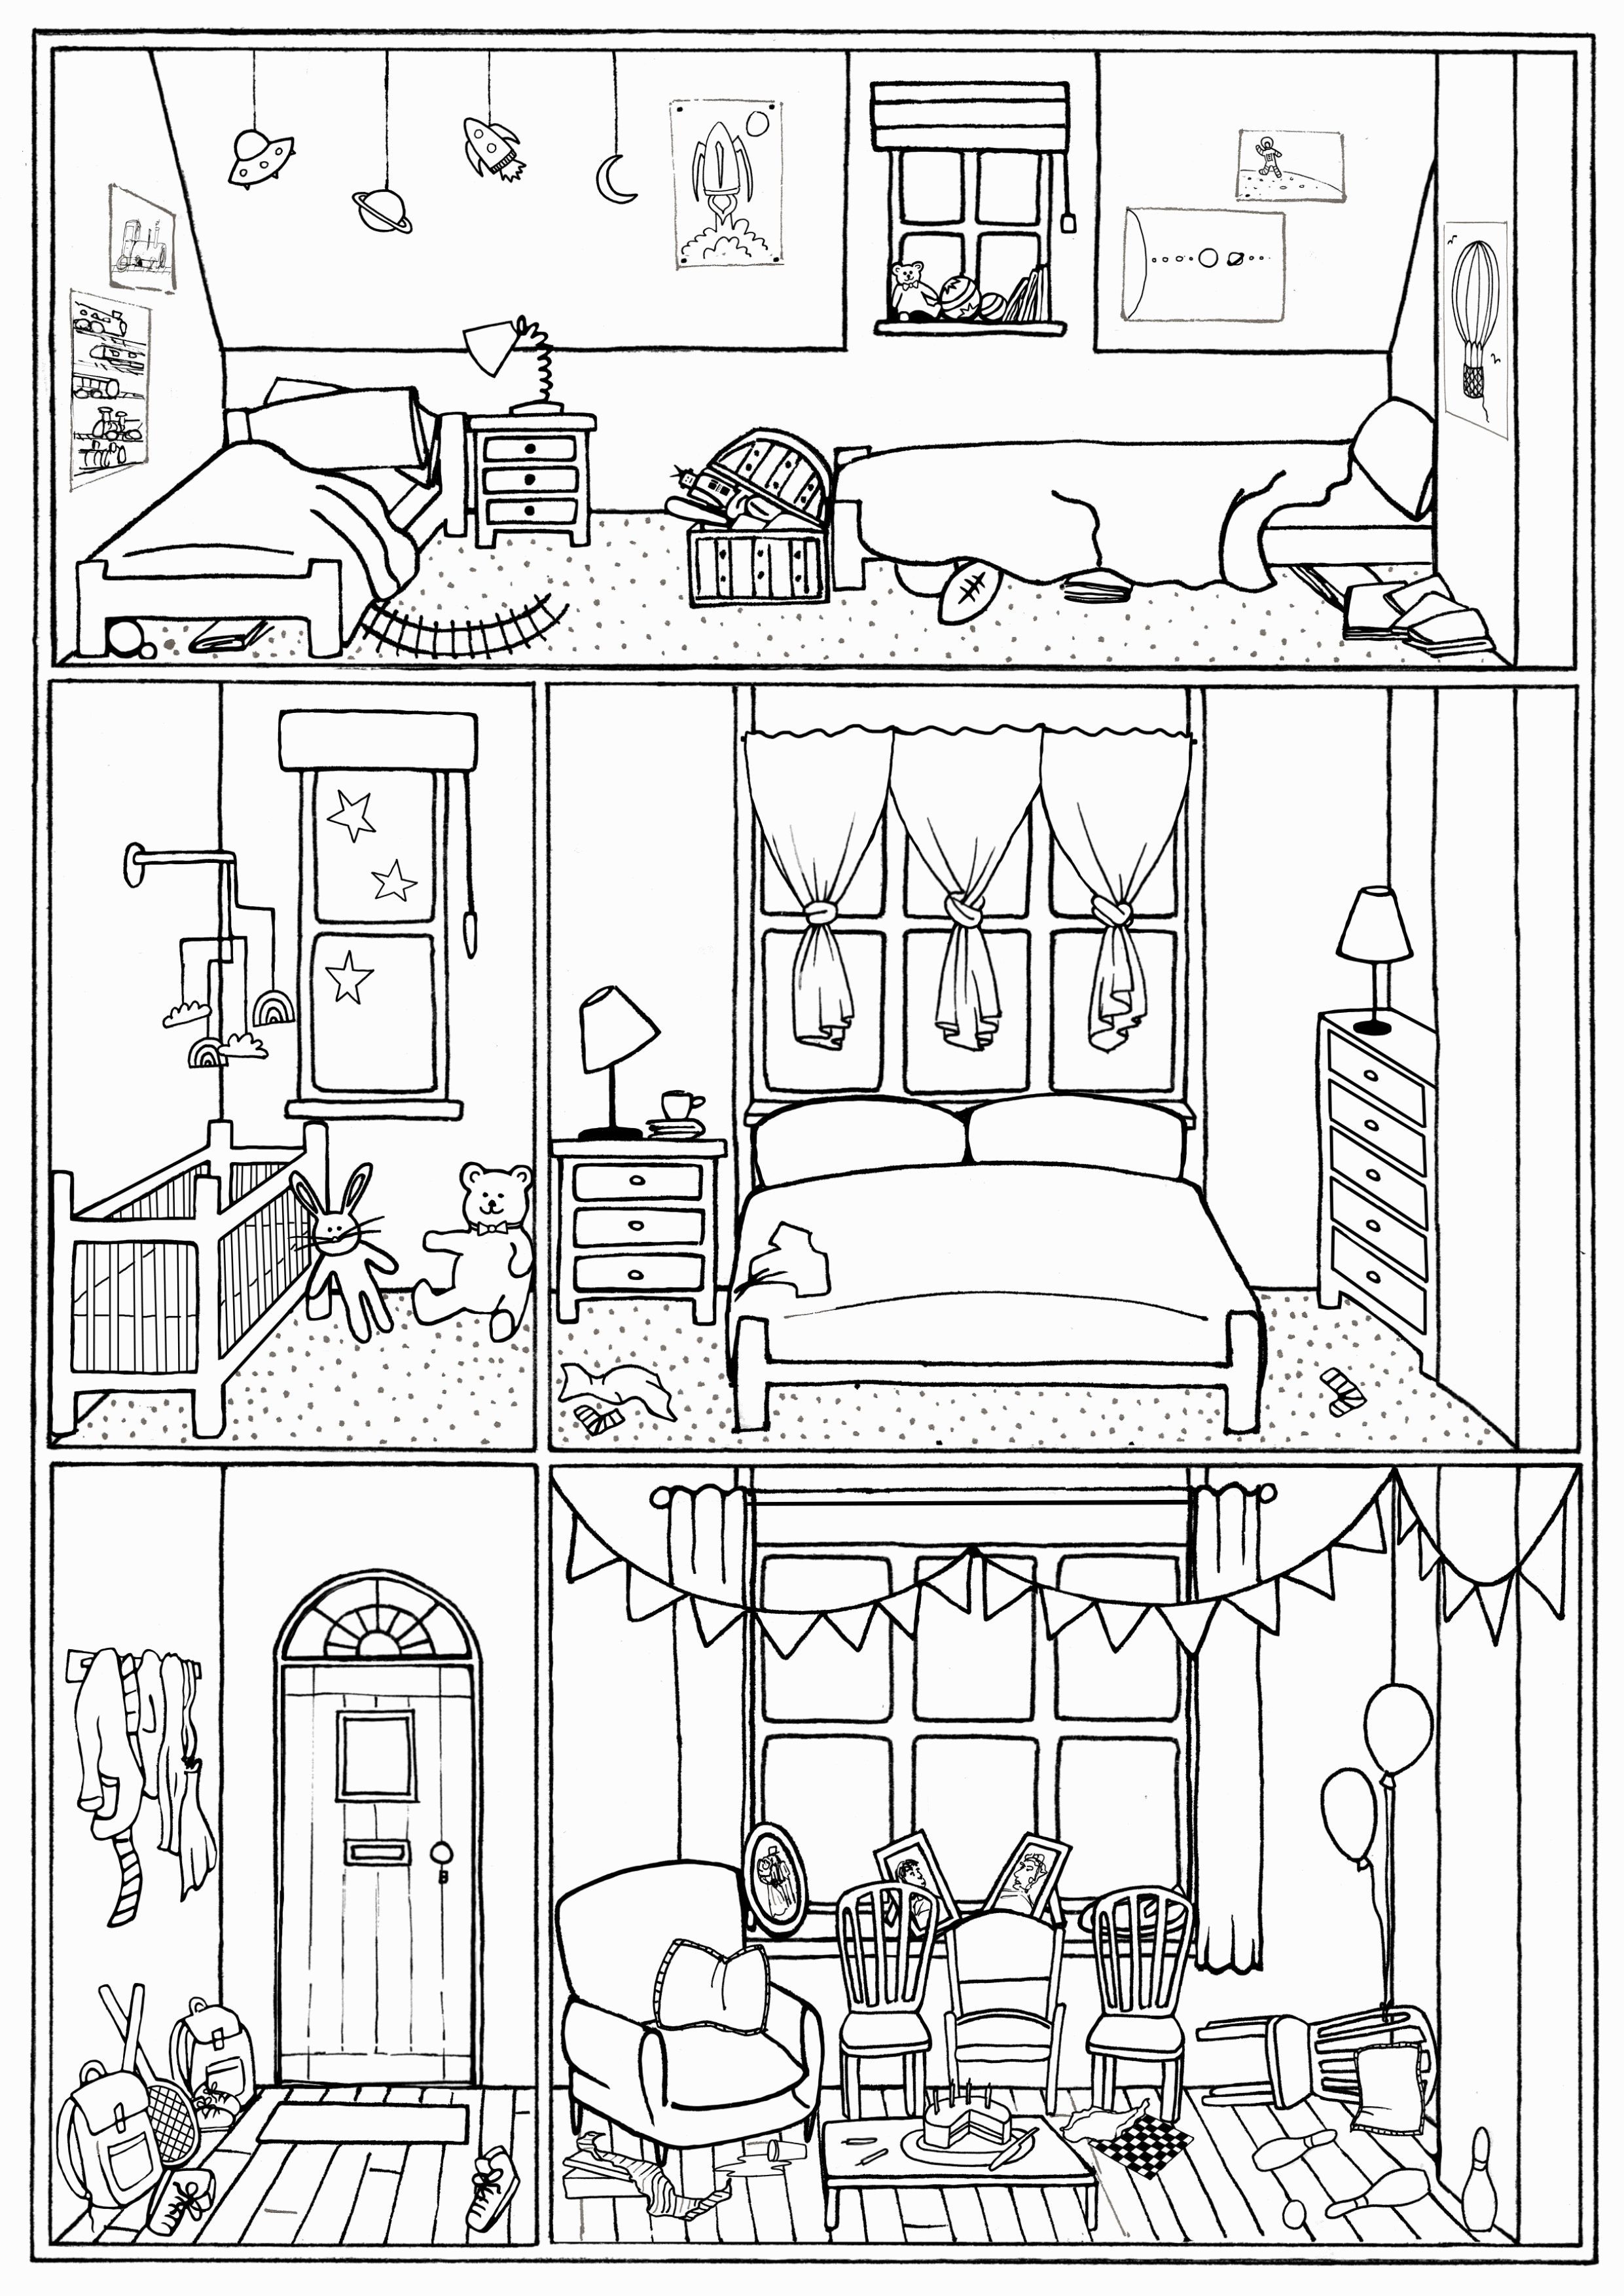 House Colouring Page Interior No 28 Line Drawing Download Print Colour Play In 2020 House Colouring Pages Colouring Pages Coloring Pages